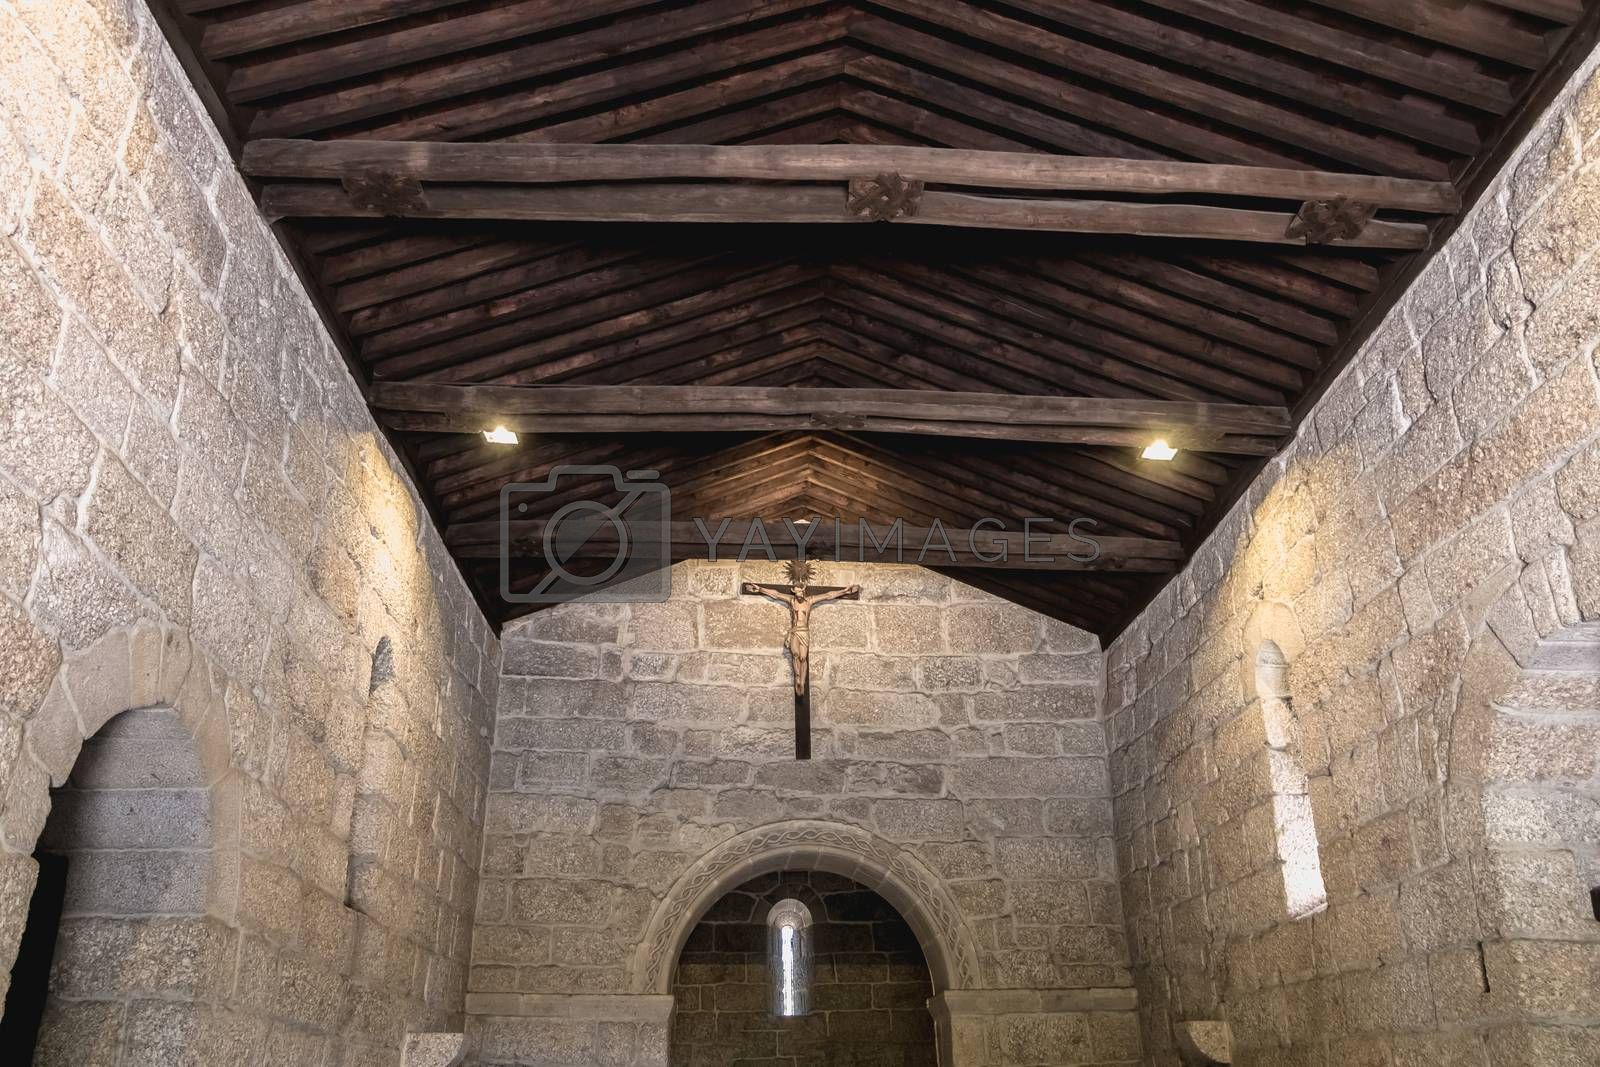 Guimaraes, Portugal - May 10, 2018: architectural detail of the Chapel of St. Michael next to the castle of Guimaraes that tourists visit on a spring day.